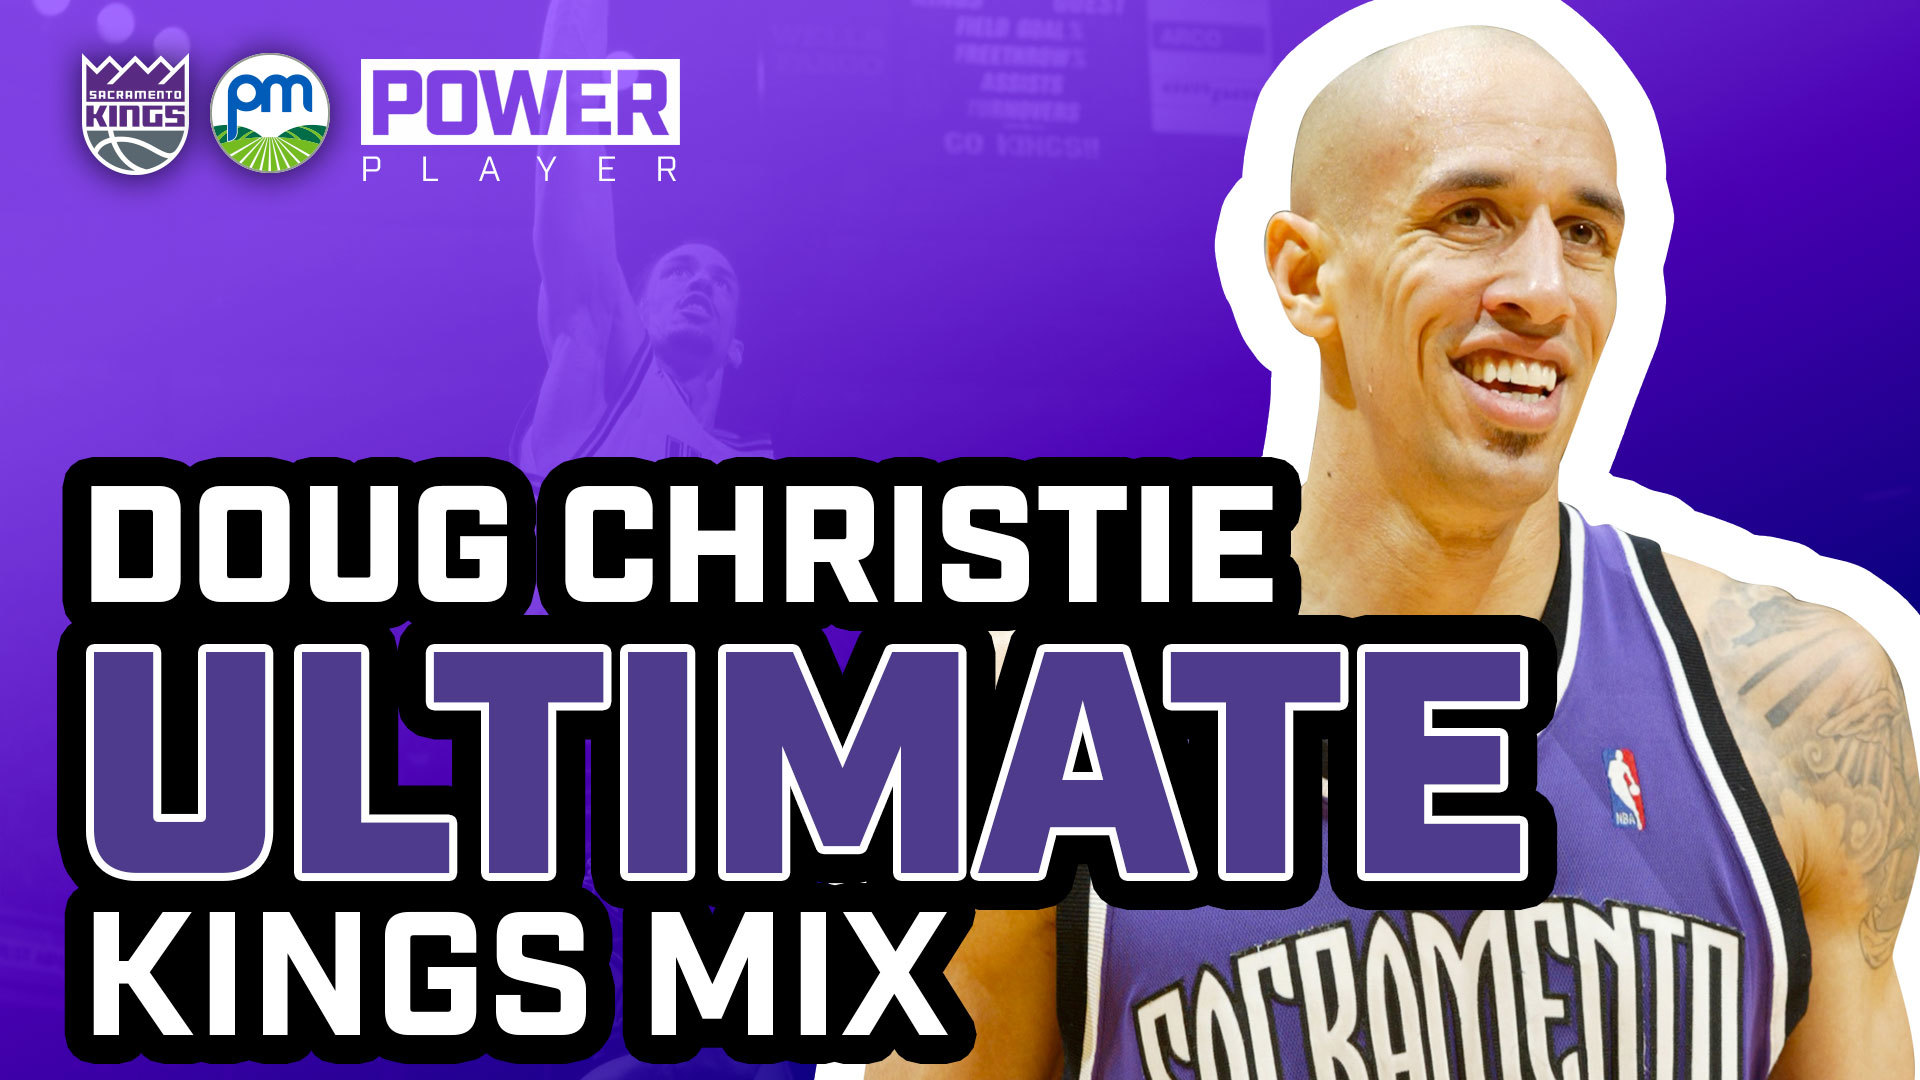 DOUG CHRISTIE ULTIMATE KINGS MIX | Power Market Power Player